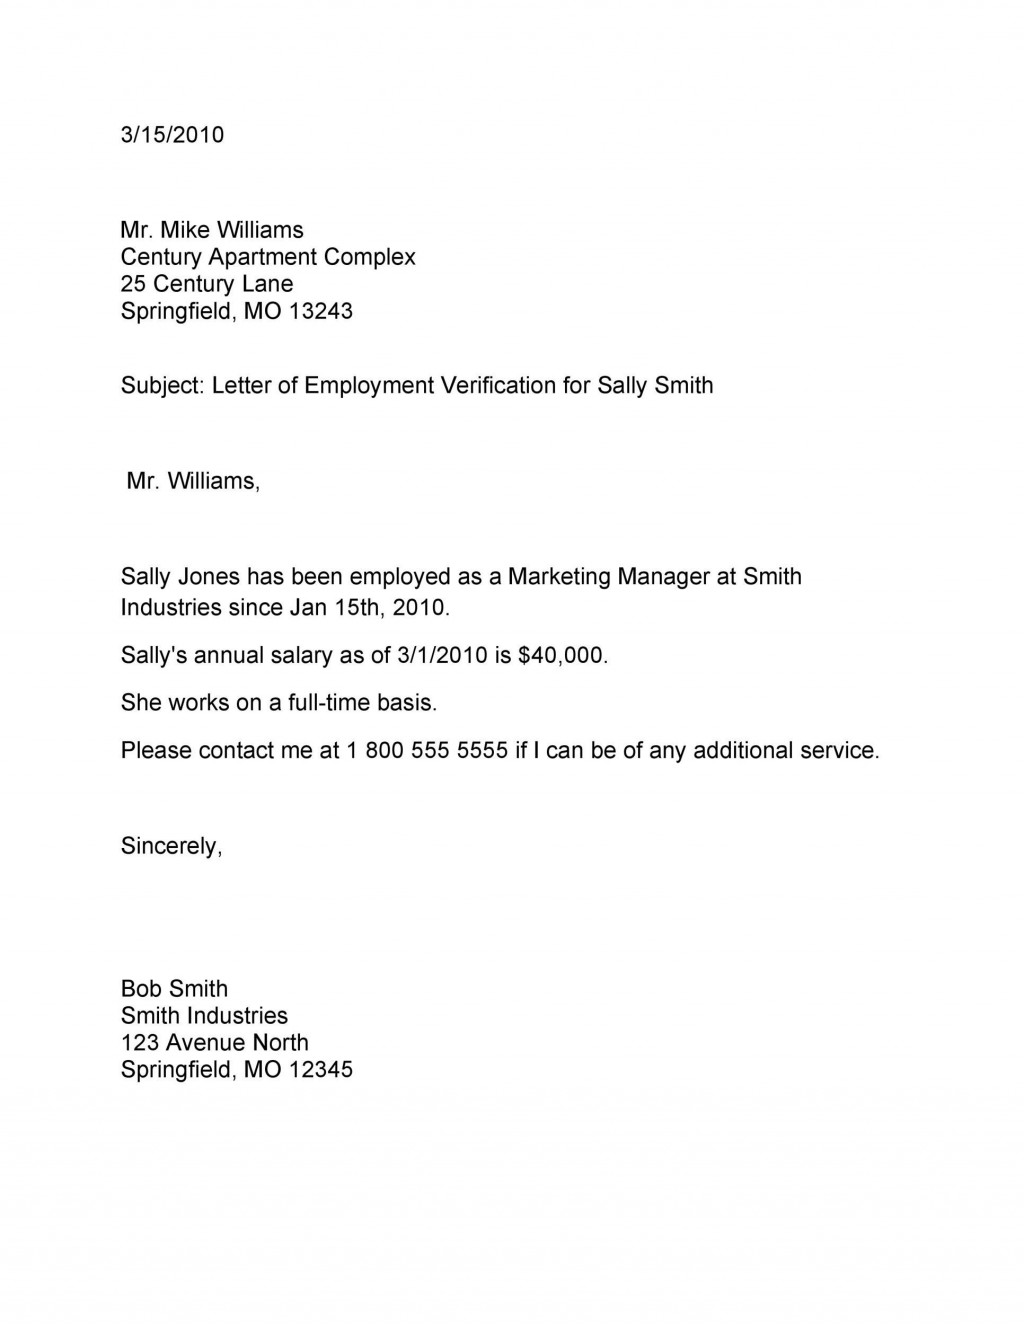 005 Frightening Proof Of Employment Letter Template Doc Example  Confirmation Document SampleLarge